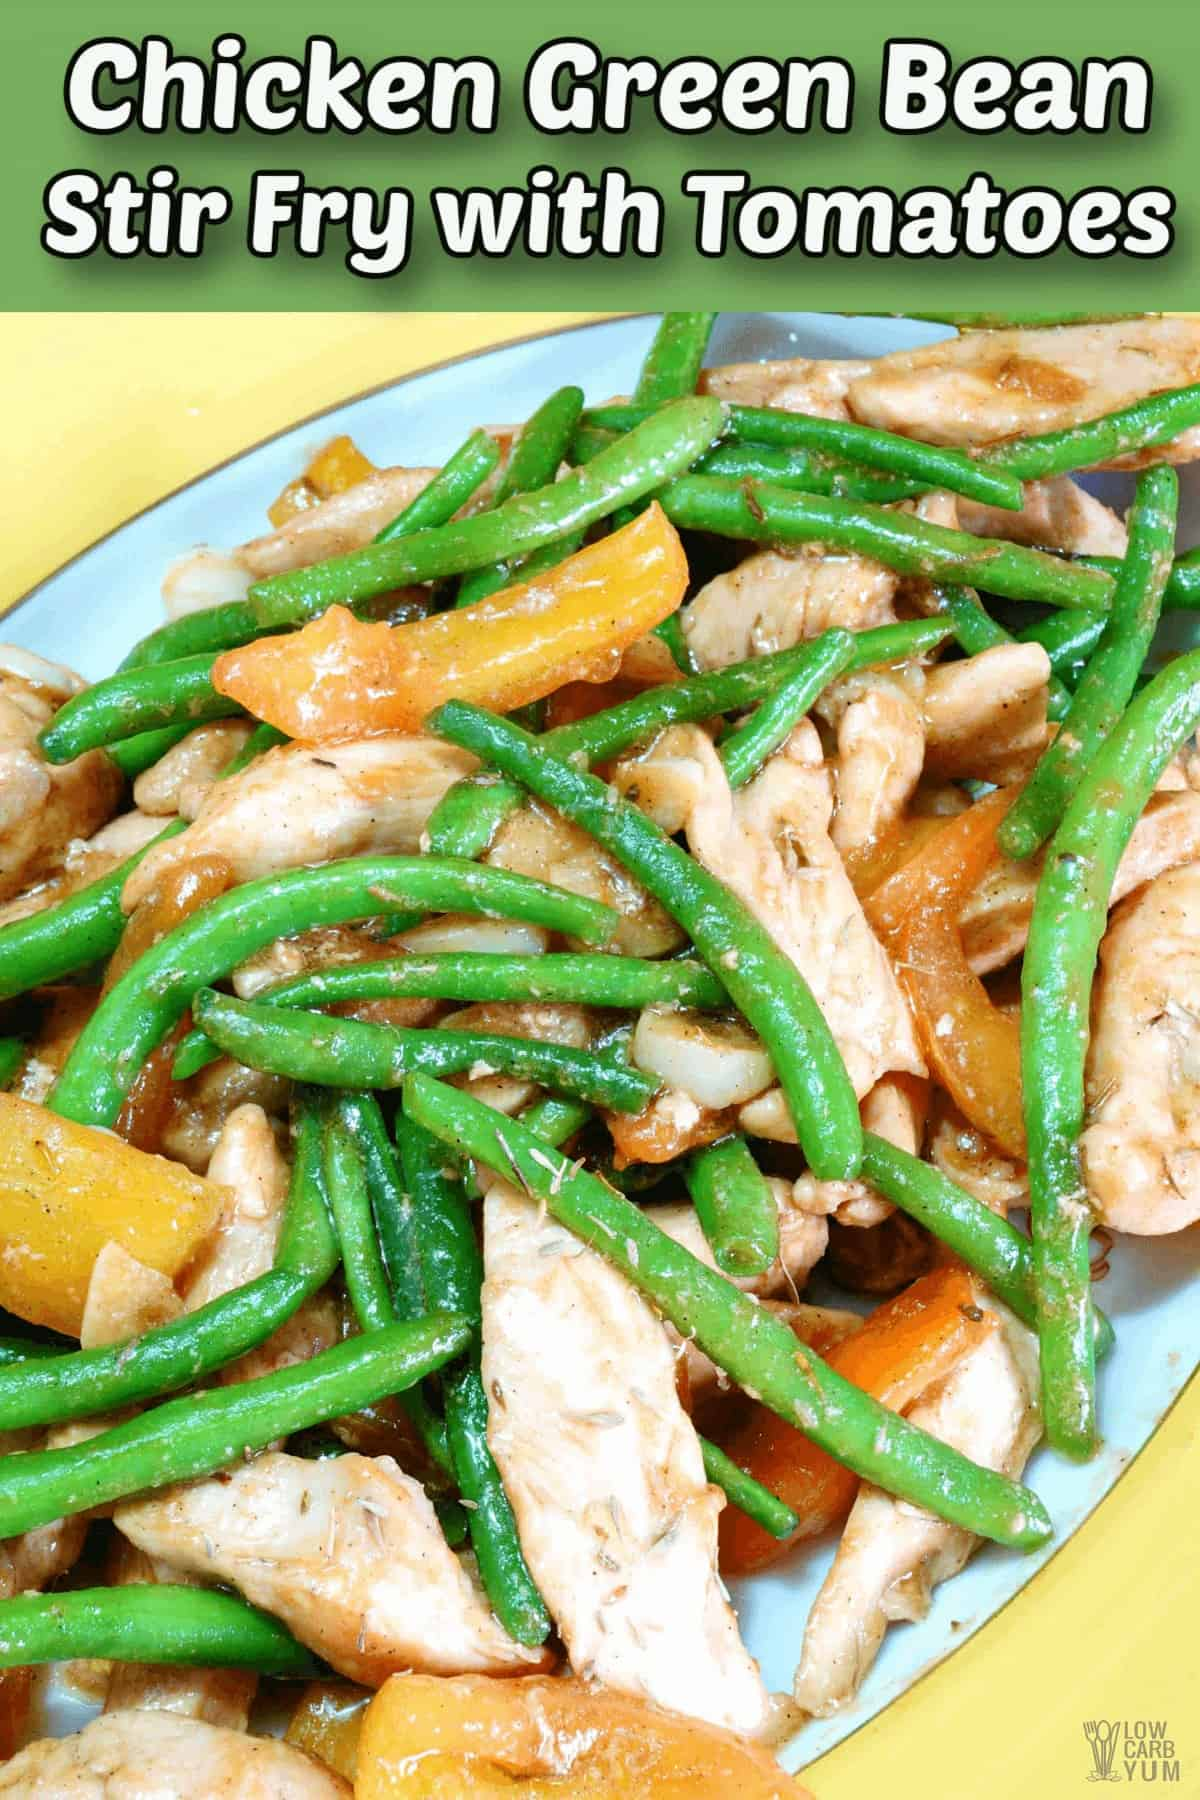 chicken green bean stir fry with tomatoes pintrest image